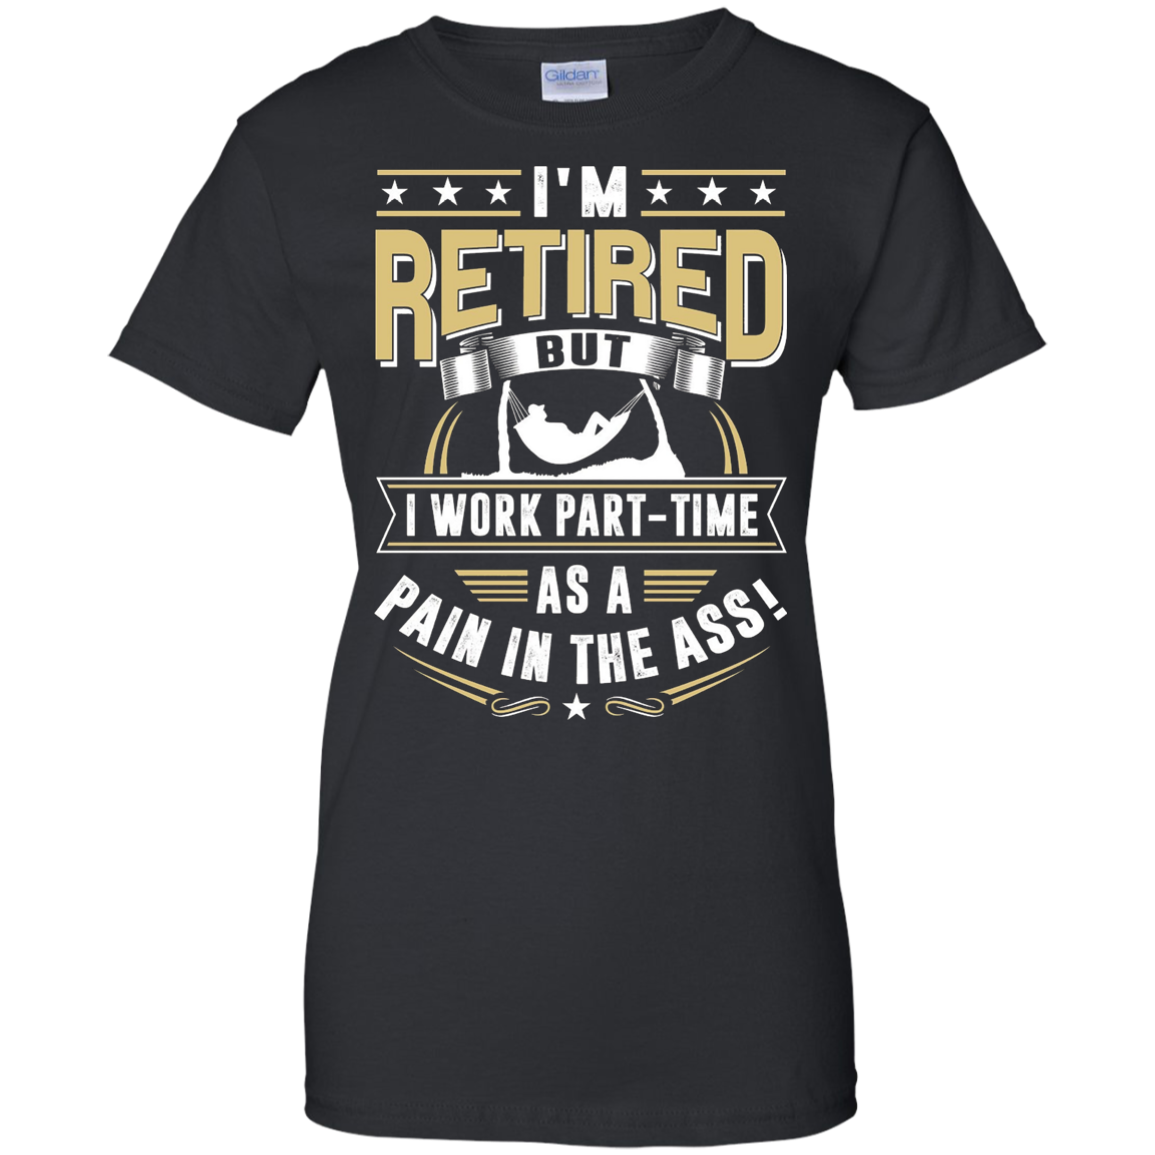 I'm retired - Pain in the Ass - Retirement shirt